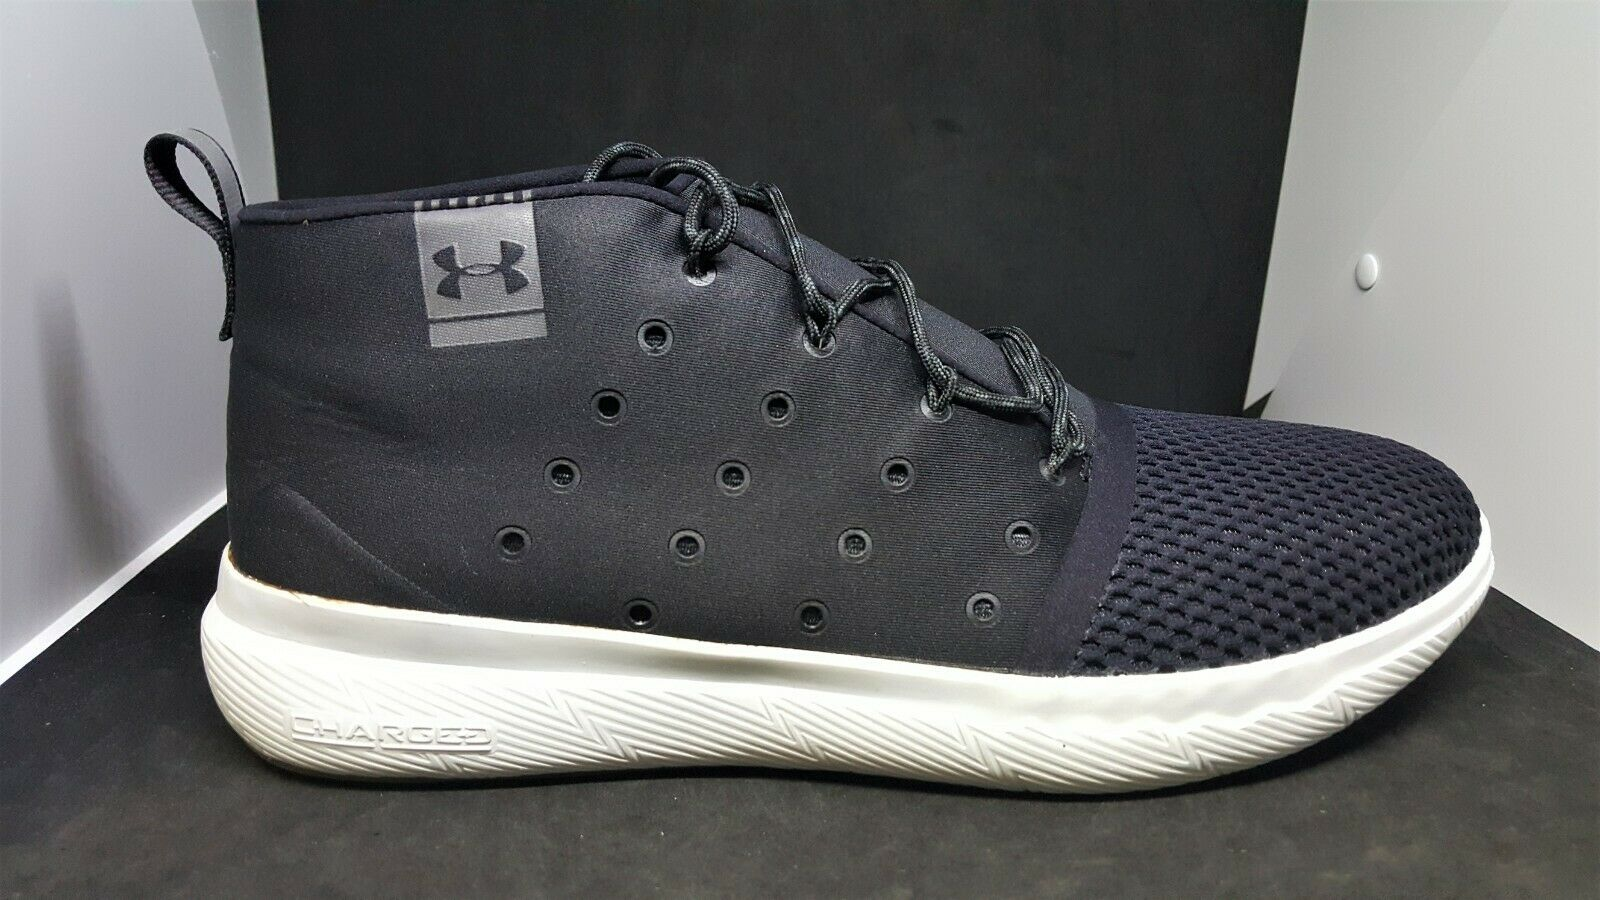 UNDER ARMOUR CHARGED 24 7 MID CASUAL schuhe schwarz 1288351-001 MEN SZ 10.5